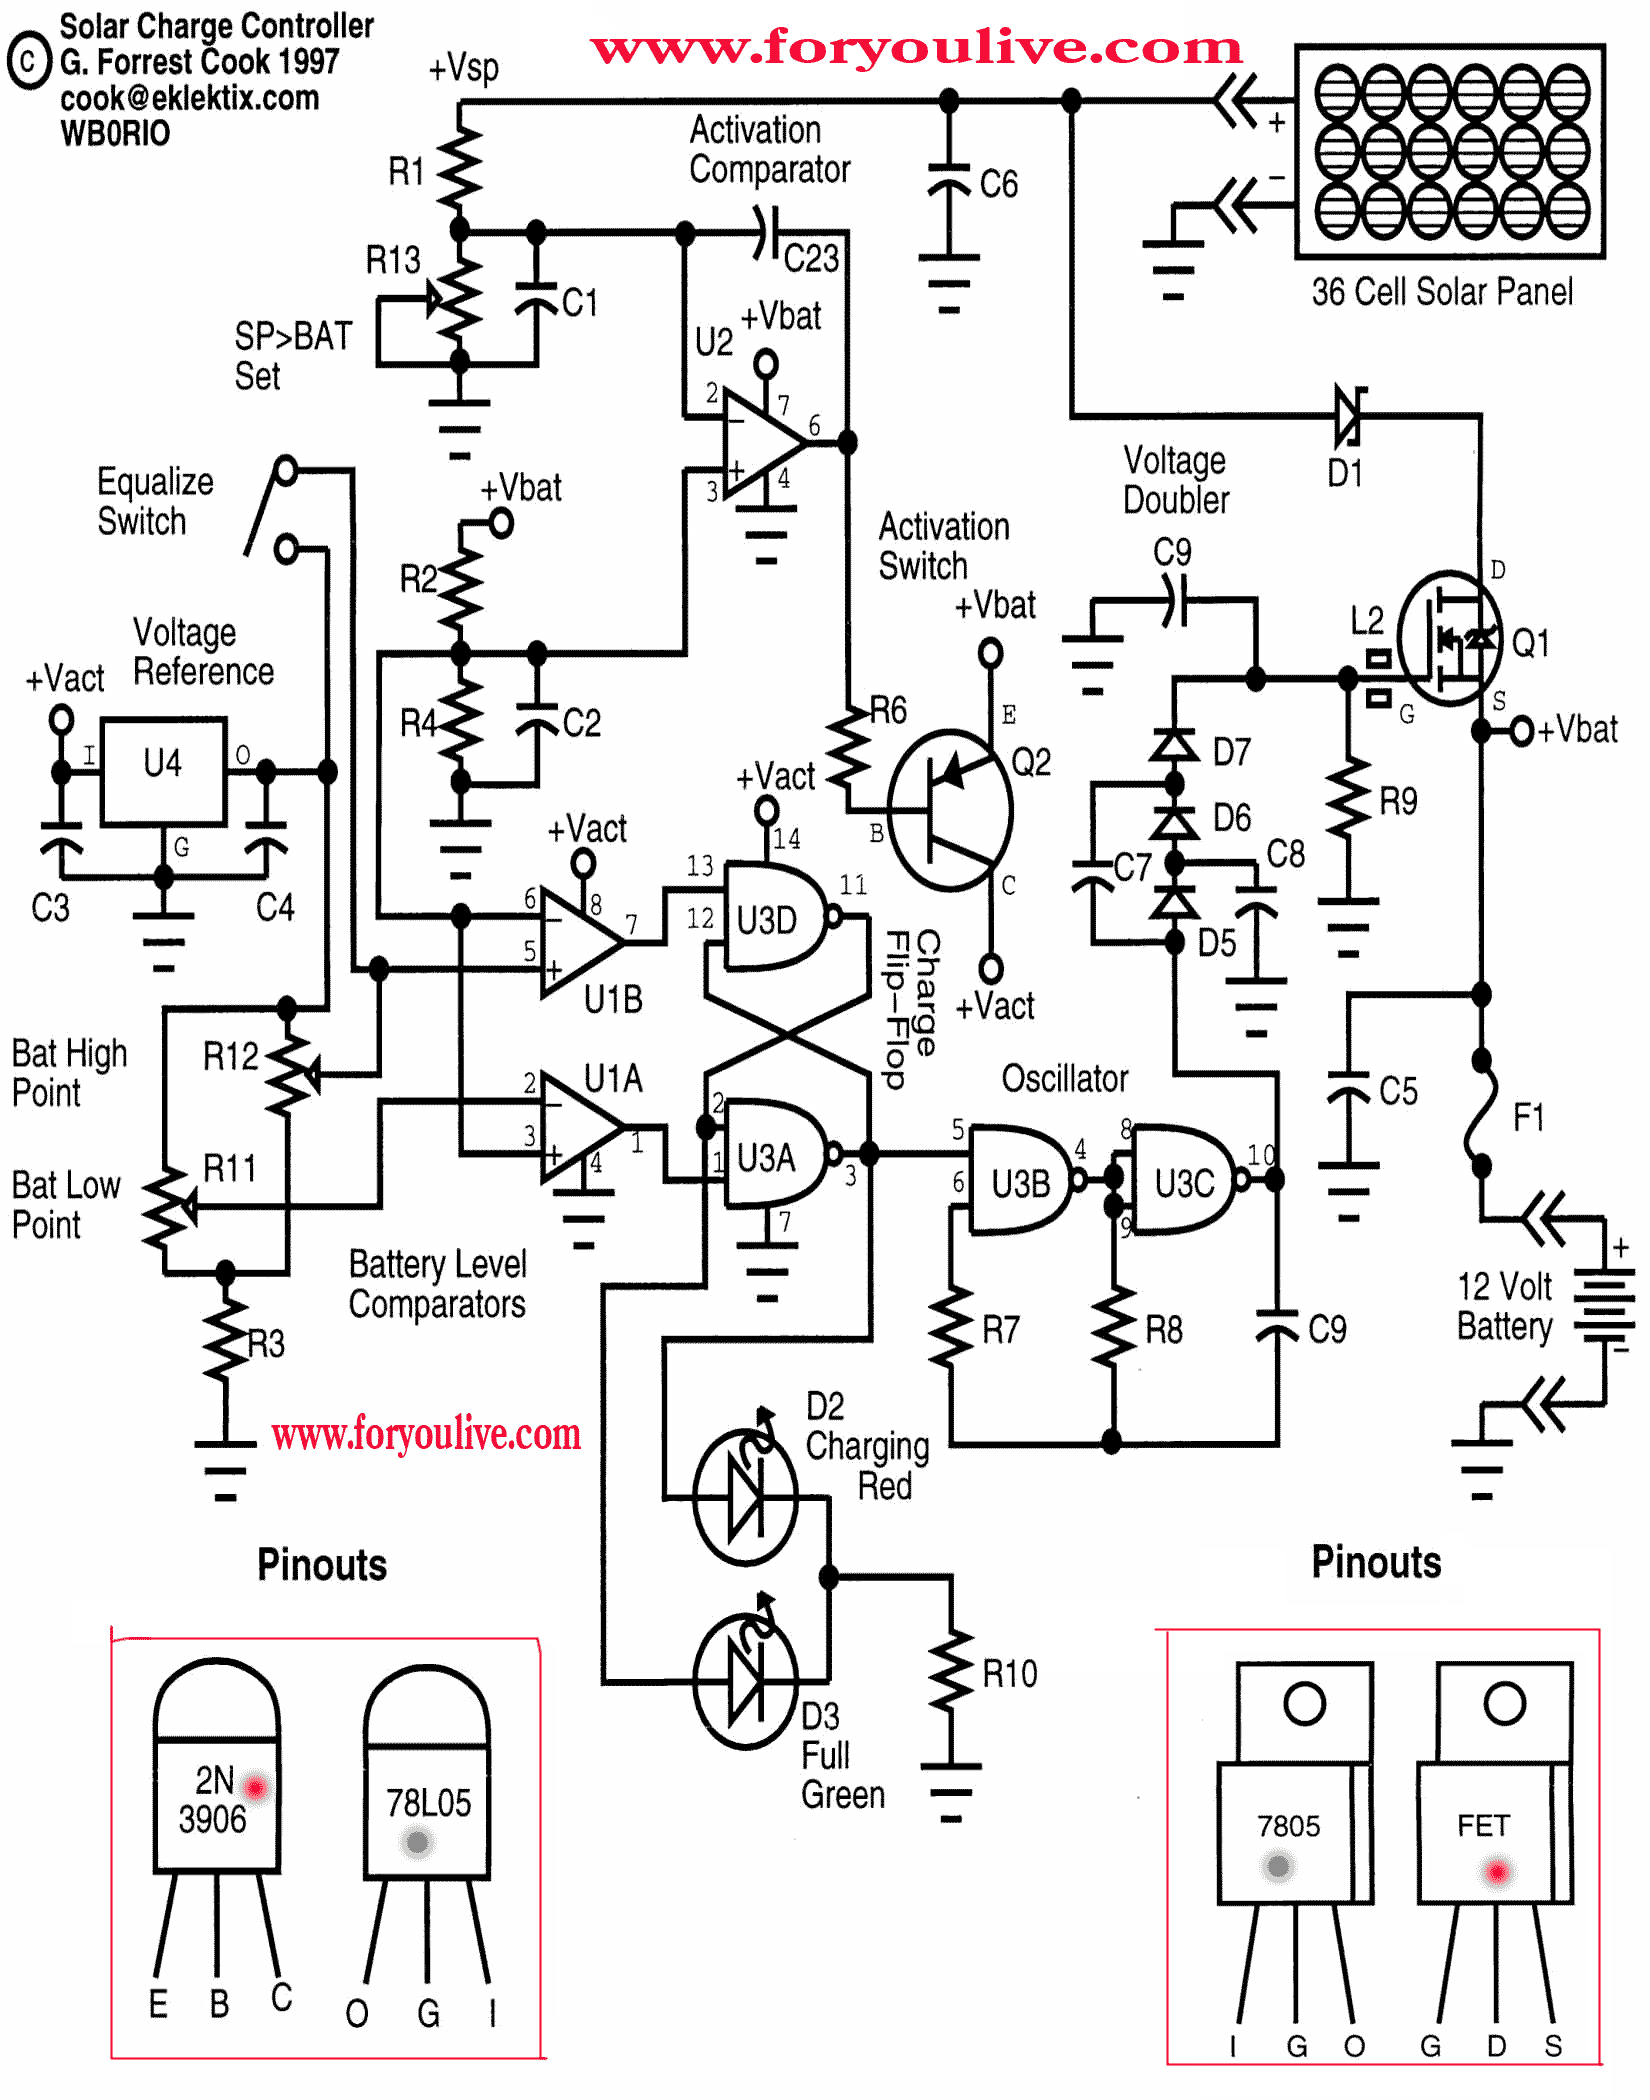 medium resolution of solar panel circuit 5volt regulate voltage 2n3906 is transistor for current caring irfz34 power